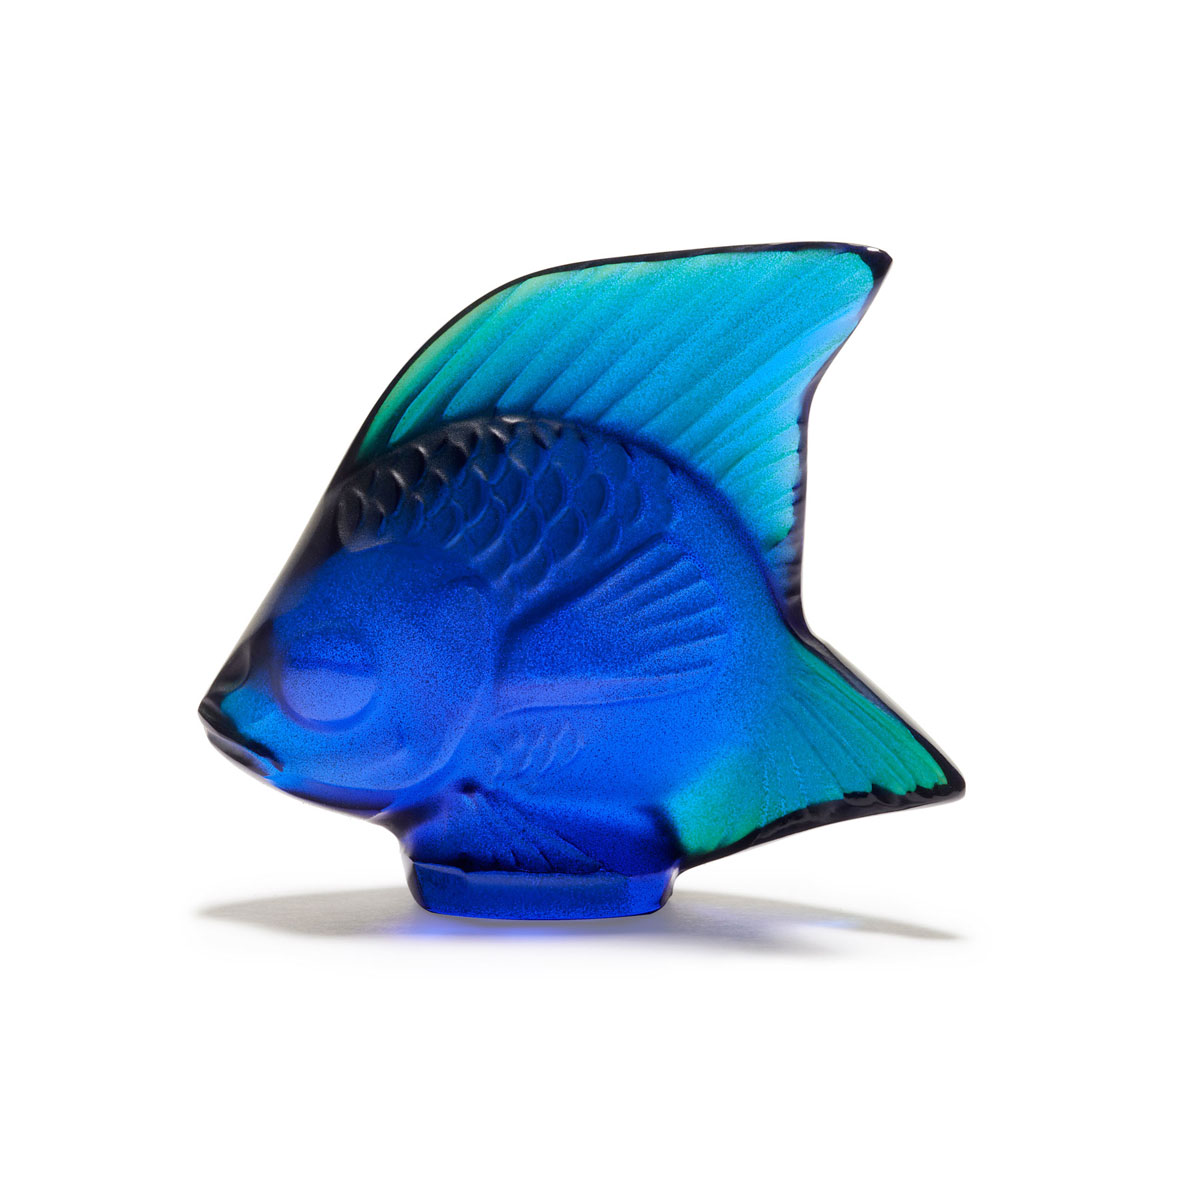 Lalique Crystal, Cap Ferrat Blue Fish Sculpture